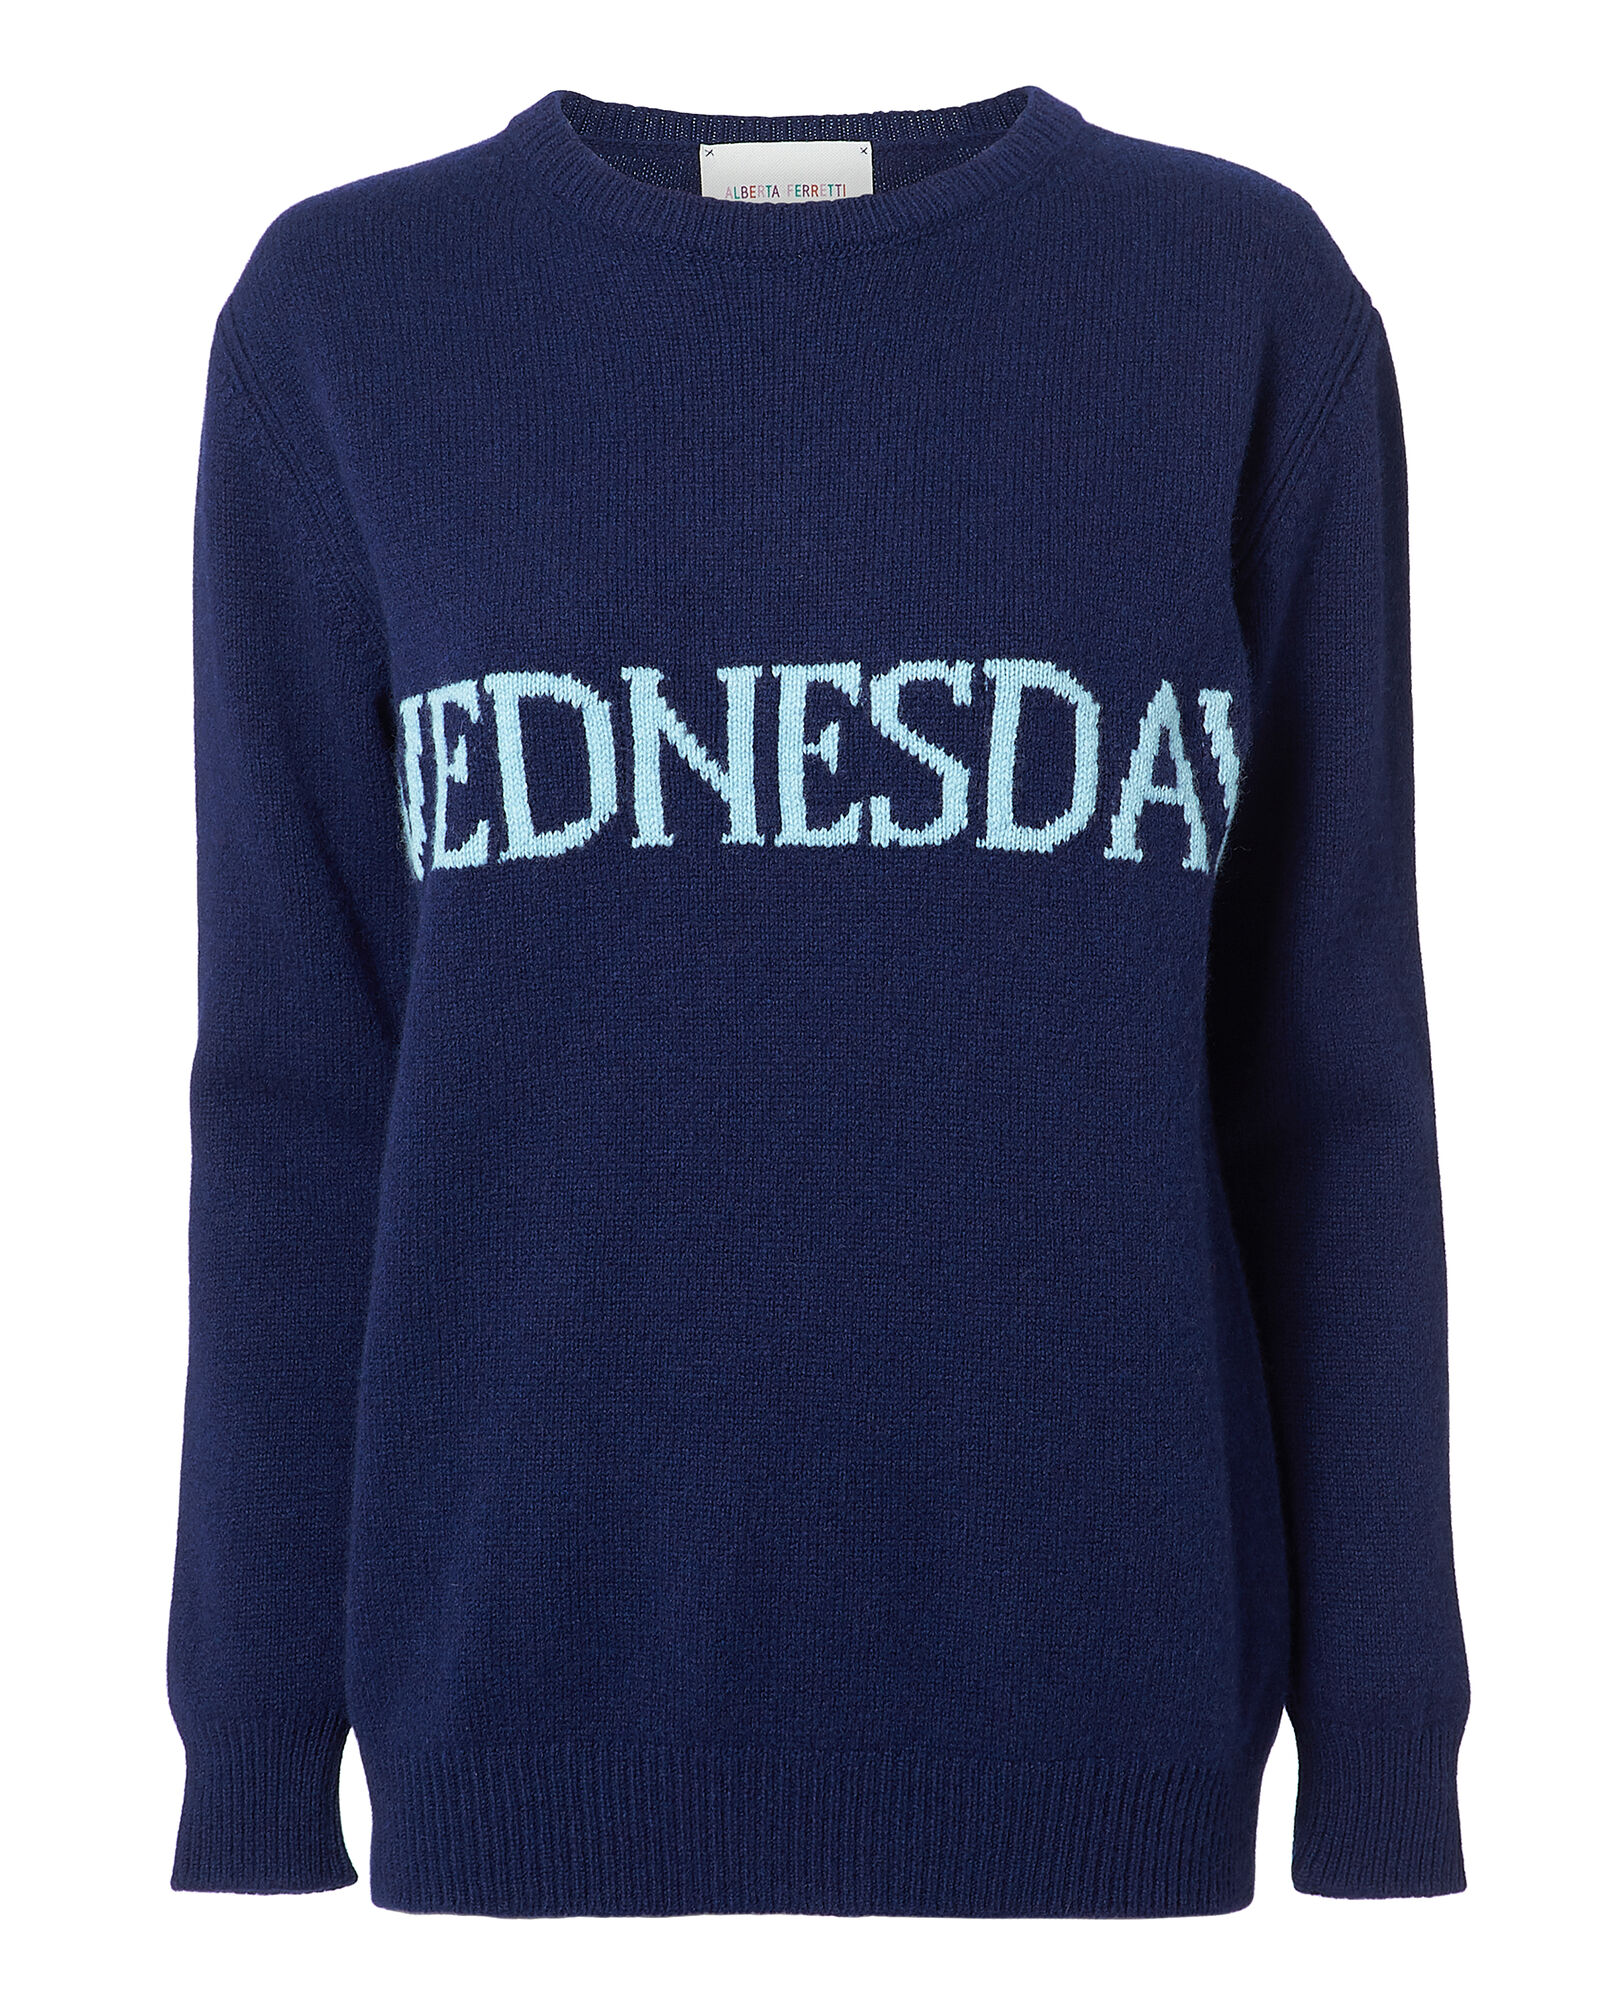 Wednesday Cashmere Sweater, NAVY, hi-res